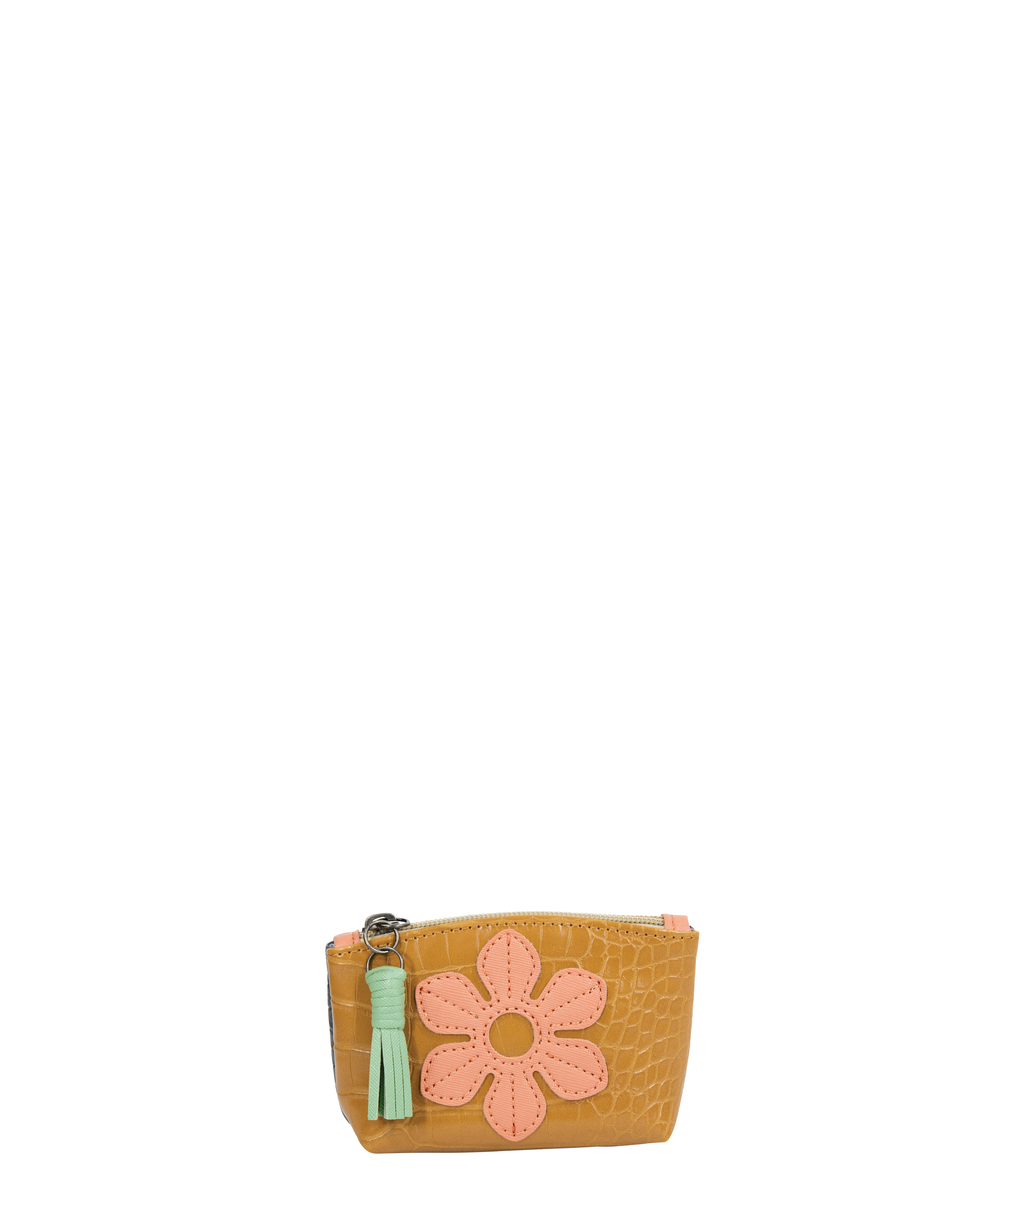 DAISY Coin Purse - Babylon